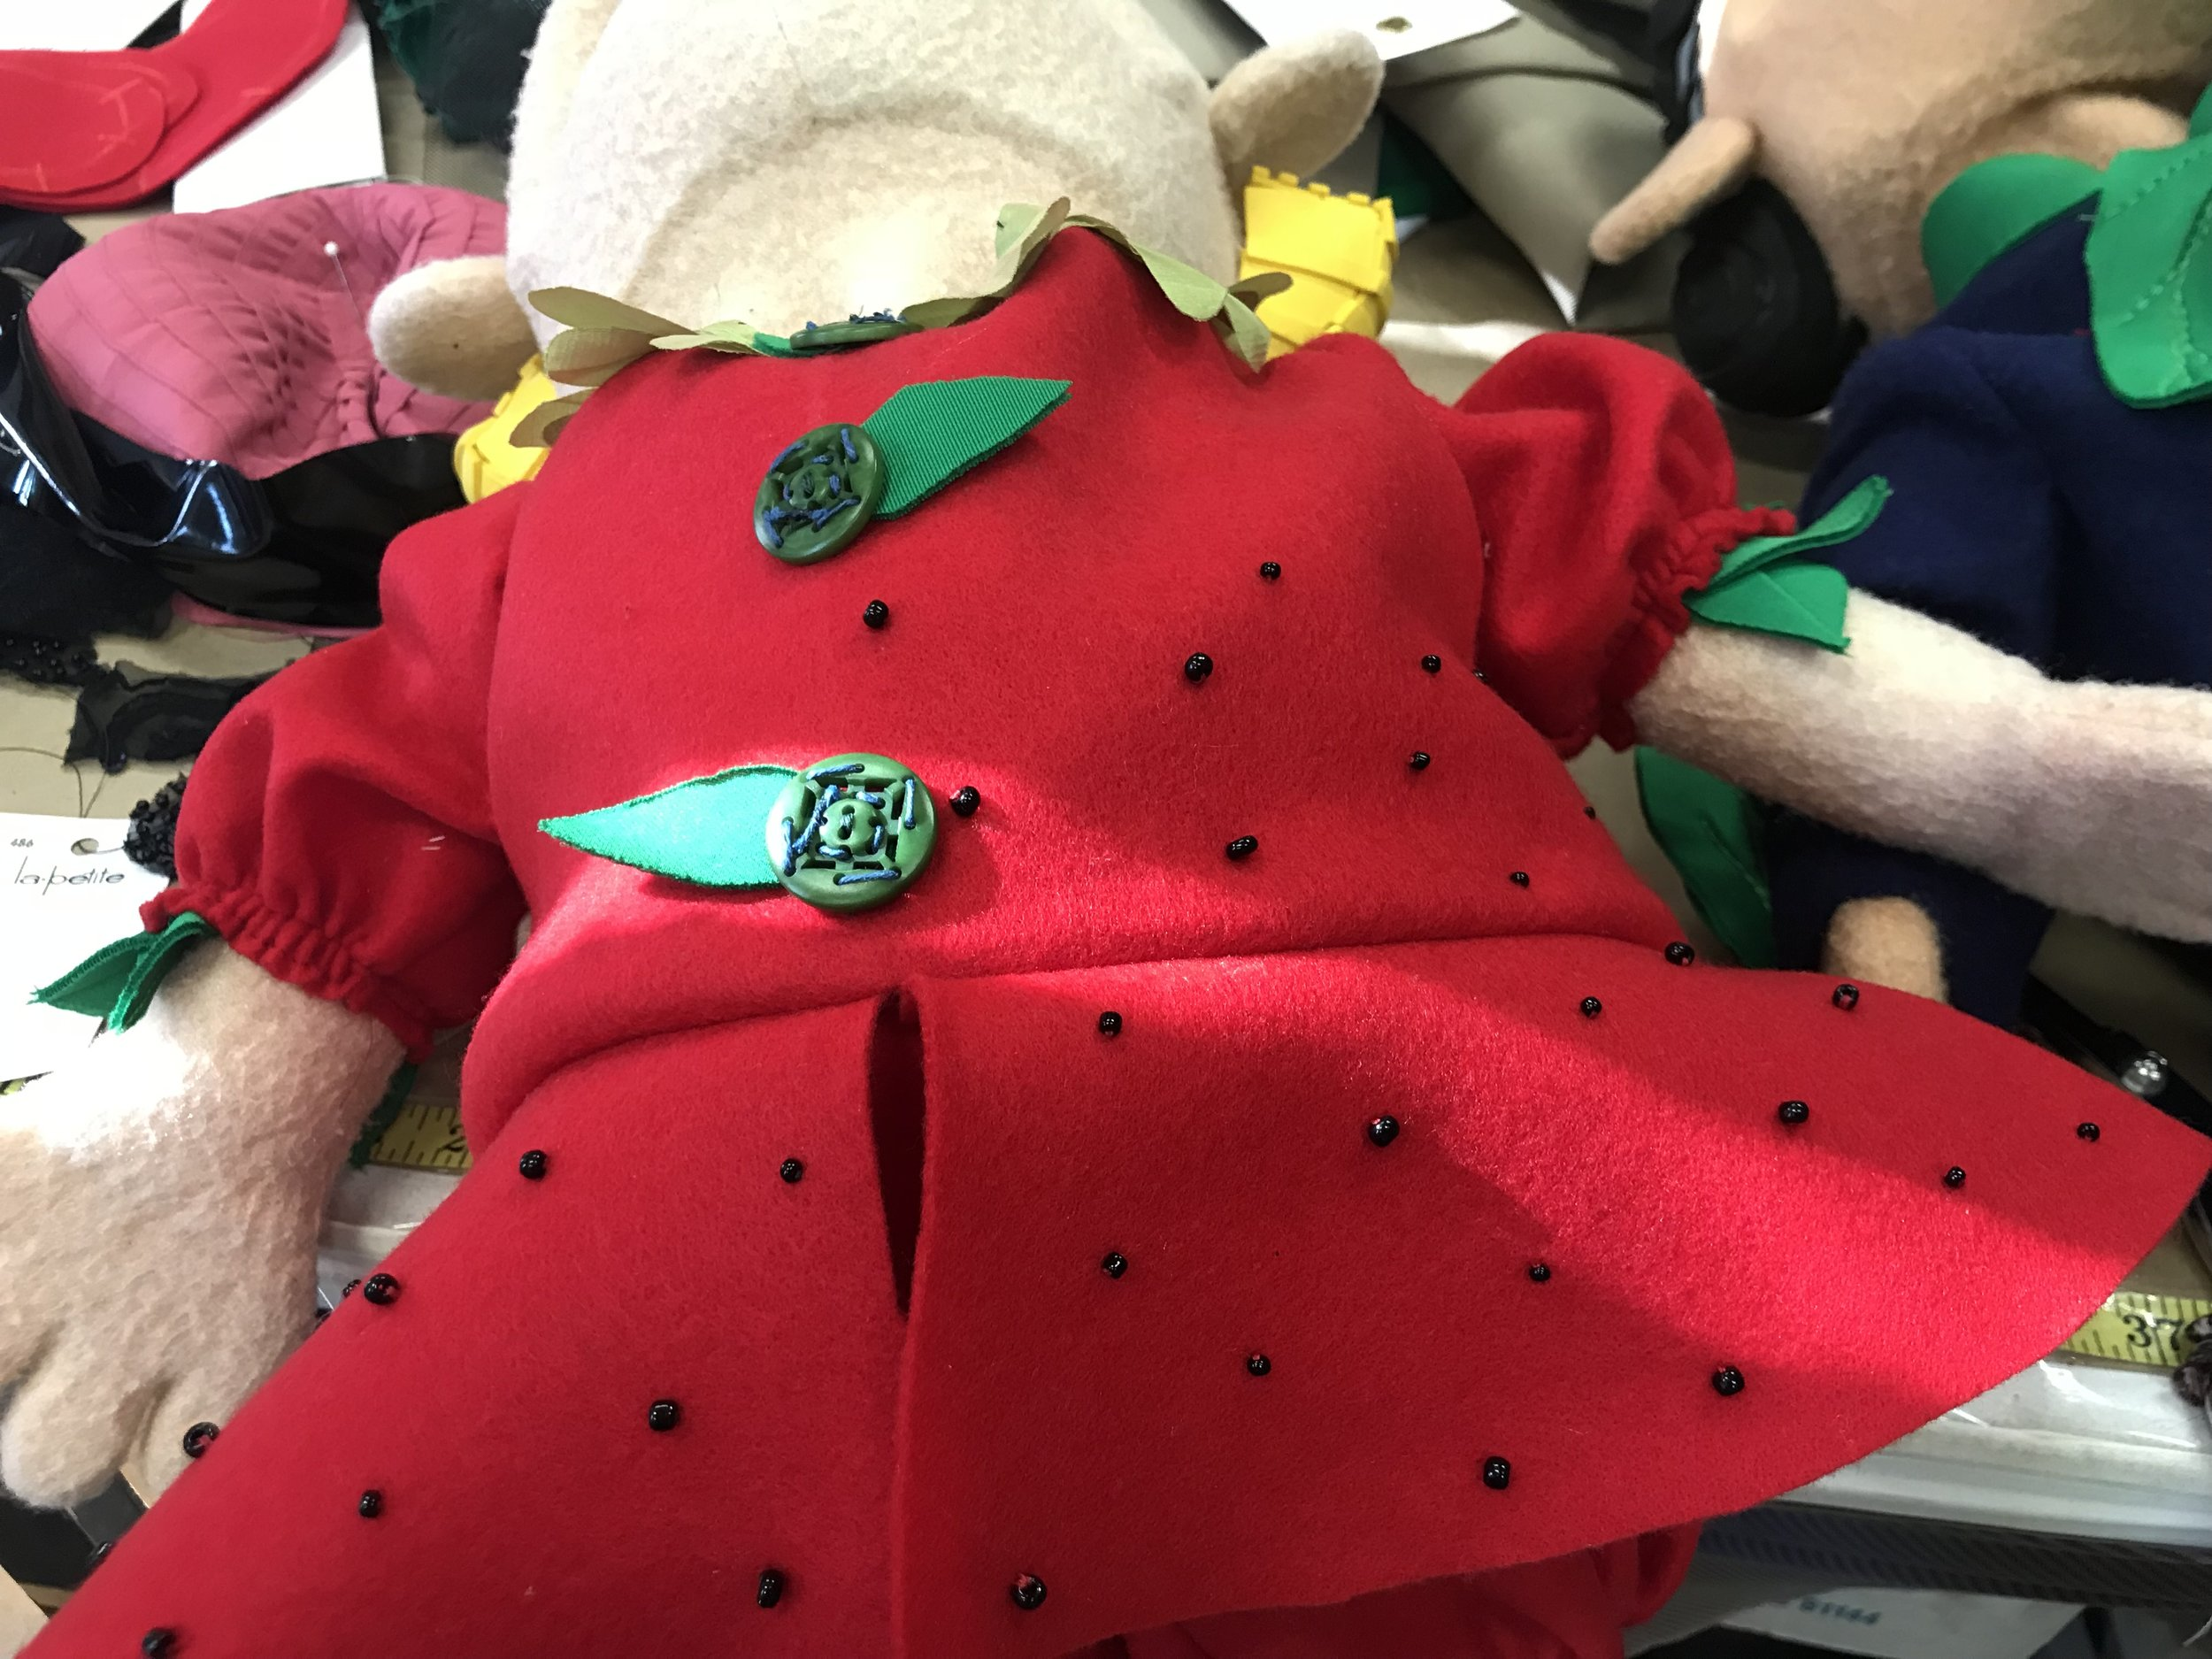 Hand Embroidered Srawberry Munchkin- Wizard Of Oz- Creede Repertory Theatre 2019  Costume Design by Asa Benally. Draping and cutting by Aurora Kenyon.